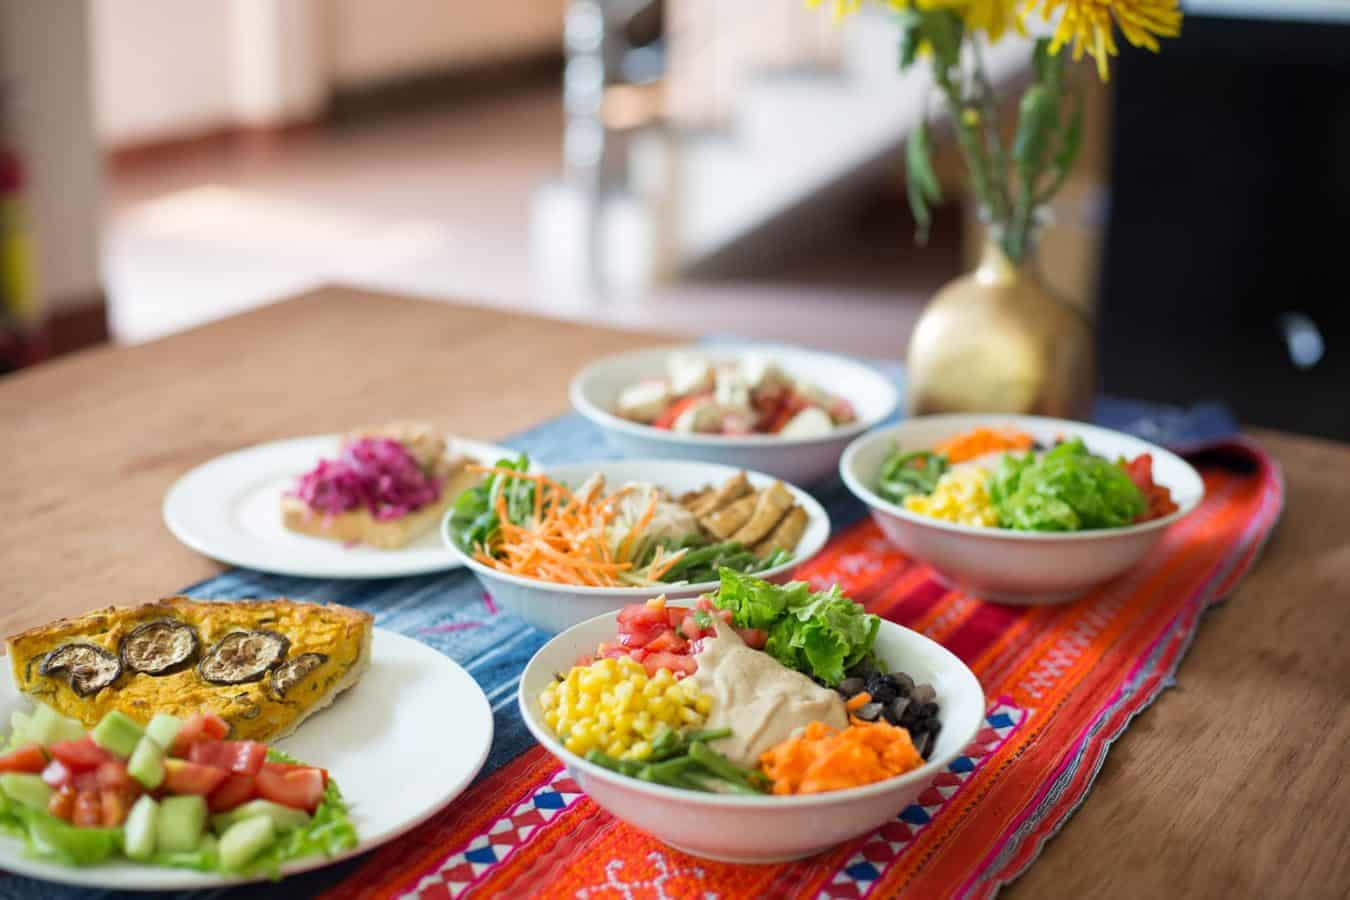 Nomad Yoga offers vegetarian options